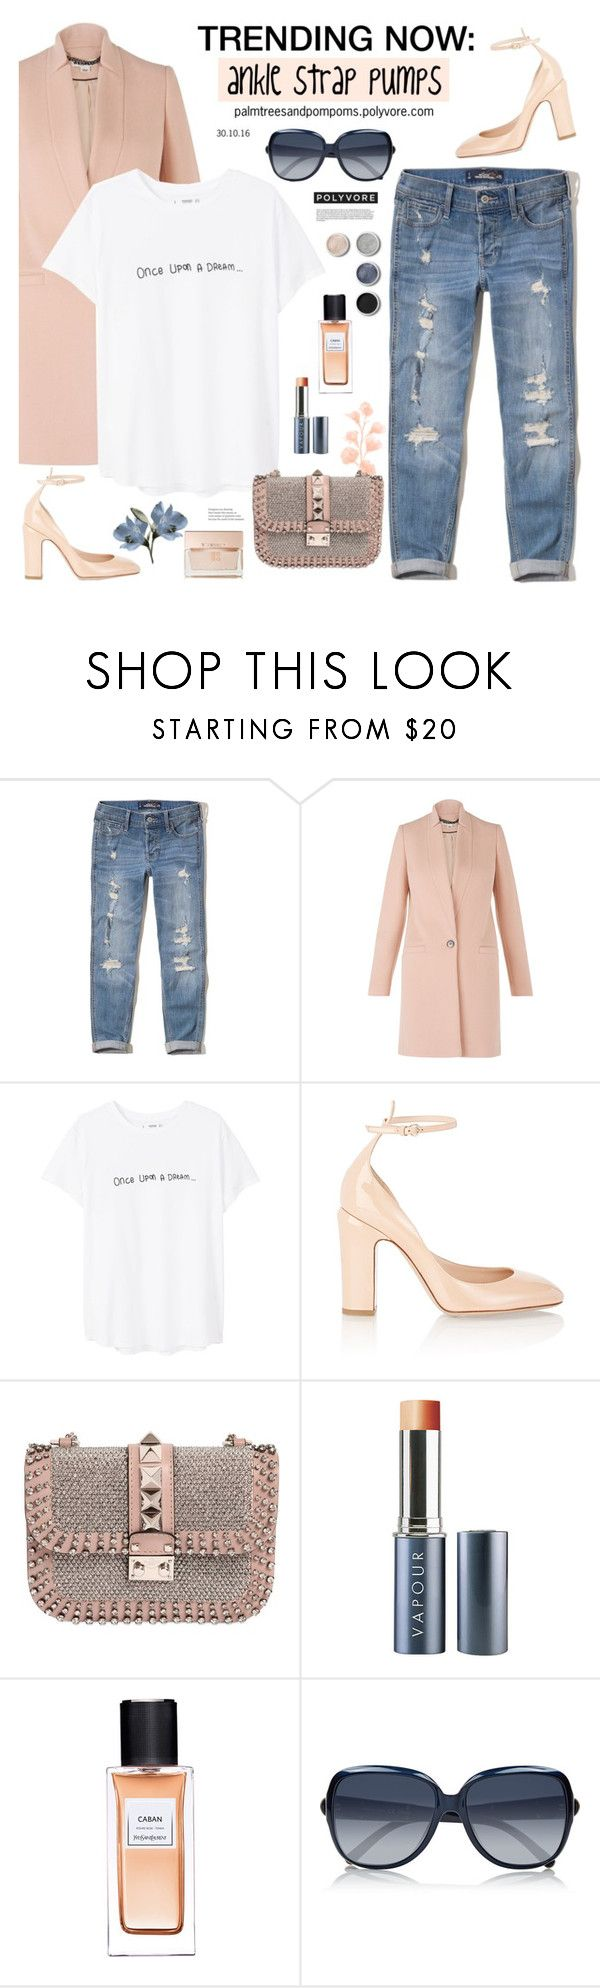 """""""Trending Now: Ankle Strap Pumps / Valentino Patent Tango Ankle-Strap Pumps"""" by palmtreesandpompoms ❤ liked on Polyvore featuring Hollister Co., Whistles, MANGO, Valentino, Vapour Organic Beauty, Yves Saint Laurent, Terre Mère, Chloé, Givenchy and valentino"""